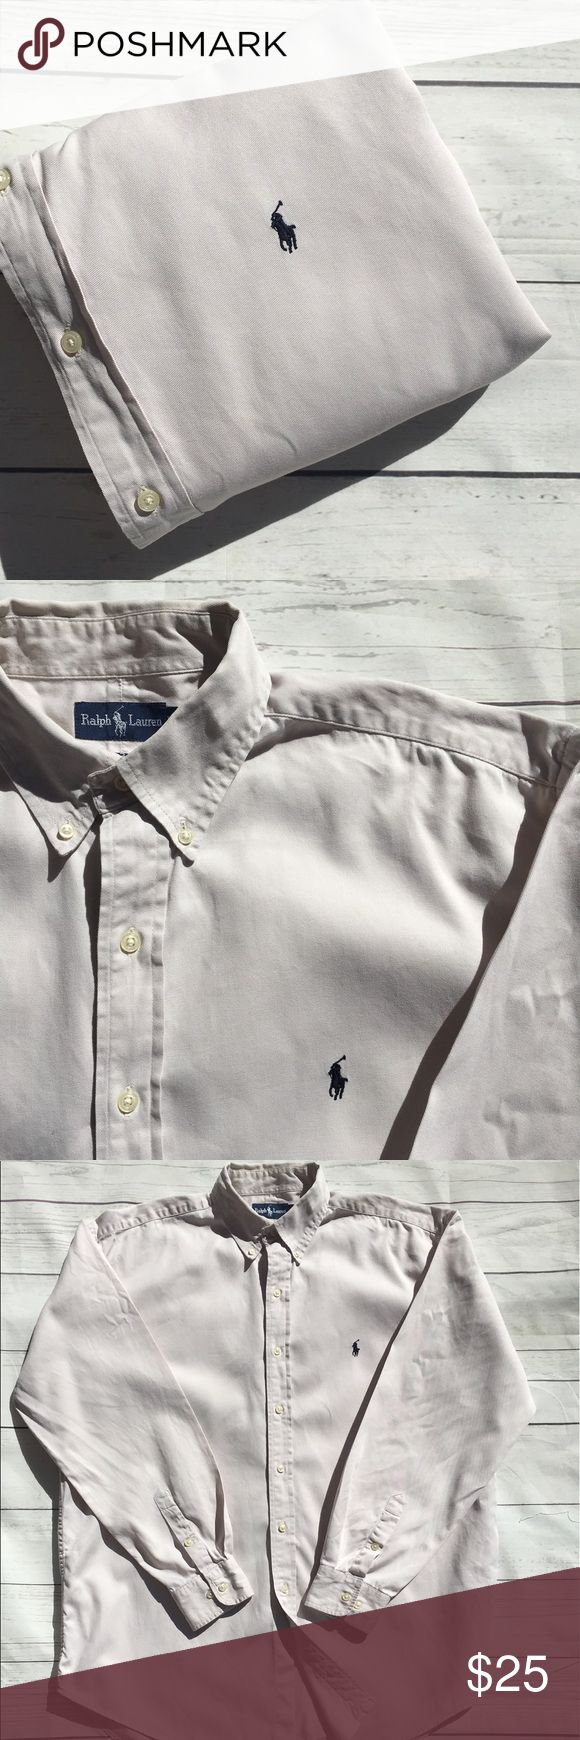 "🐎 🐎SALE🐎1/$25•2/$42•3/$60• Polo Ralph Lauren🇺🇸Military, police & fire men & women receive 15% discount🇺🇸men's  long sleeve 100% cotton oxford shirt•XL BLAKE per tag: see measurements below•Signature pony• EUC• some faint spots near hem• shoulder: 22""• Chest: 27""• Sleeve:35""• Length: 34""• CHECK BACK WEEKLY FOR NEW LISTINGS• Polo by Ralph Lauren Shirts Casual Button Down Shirts"